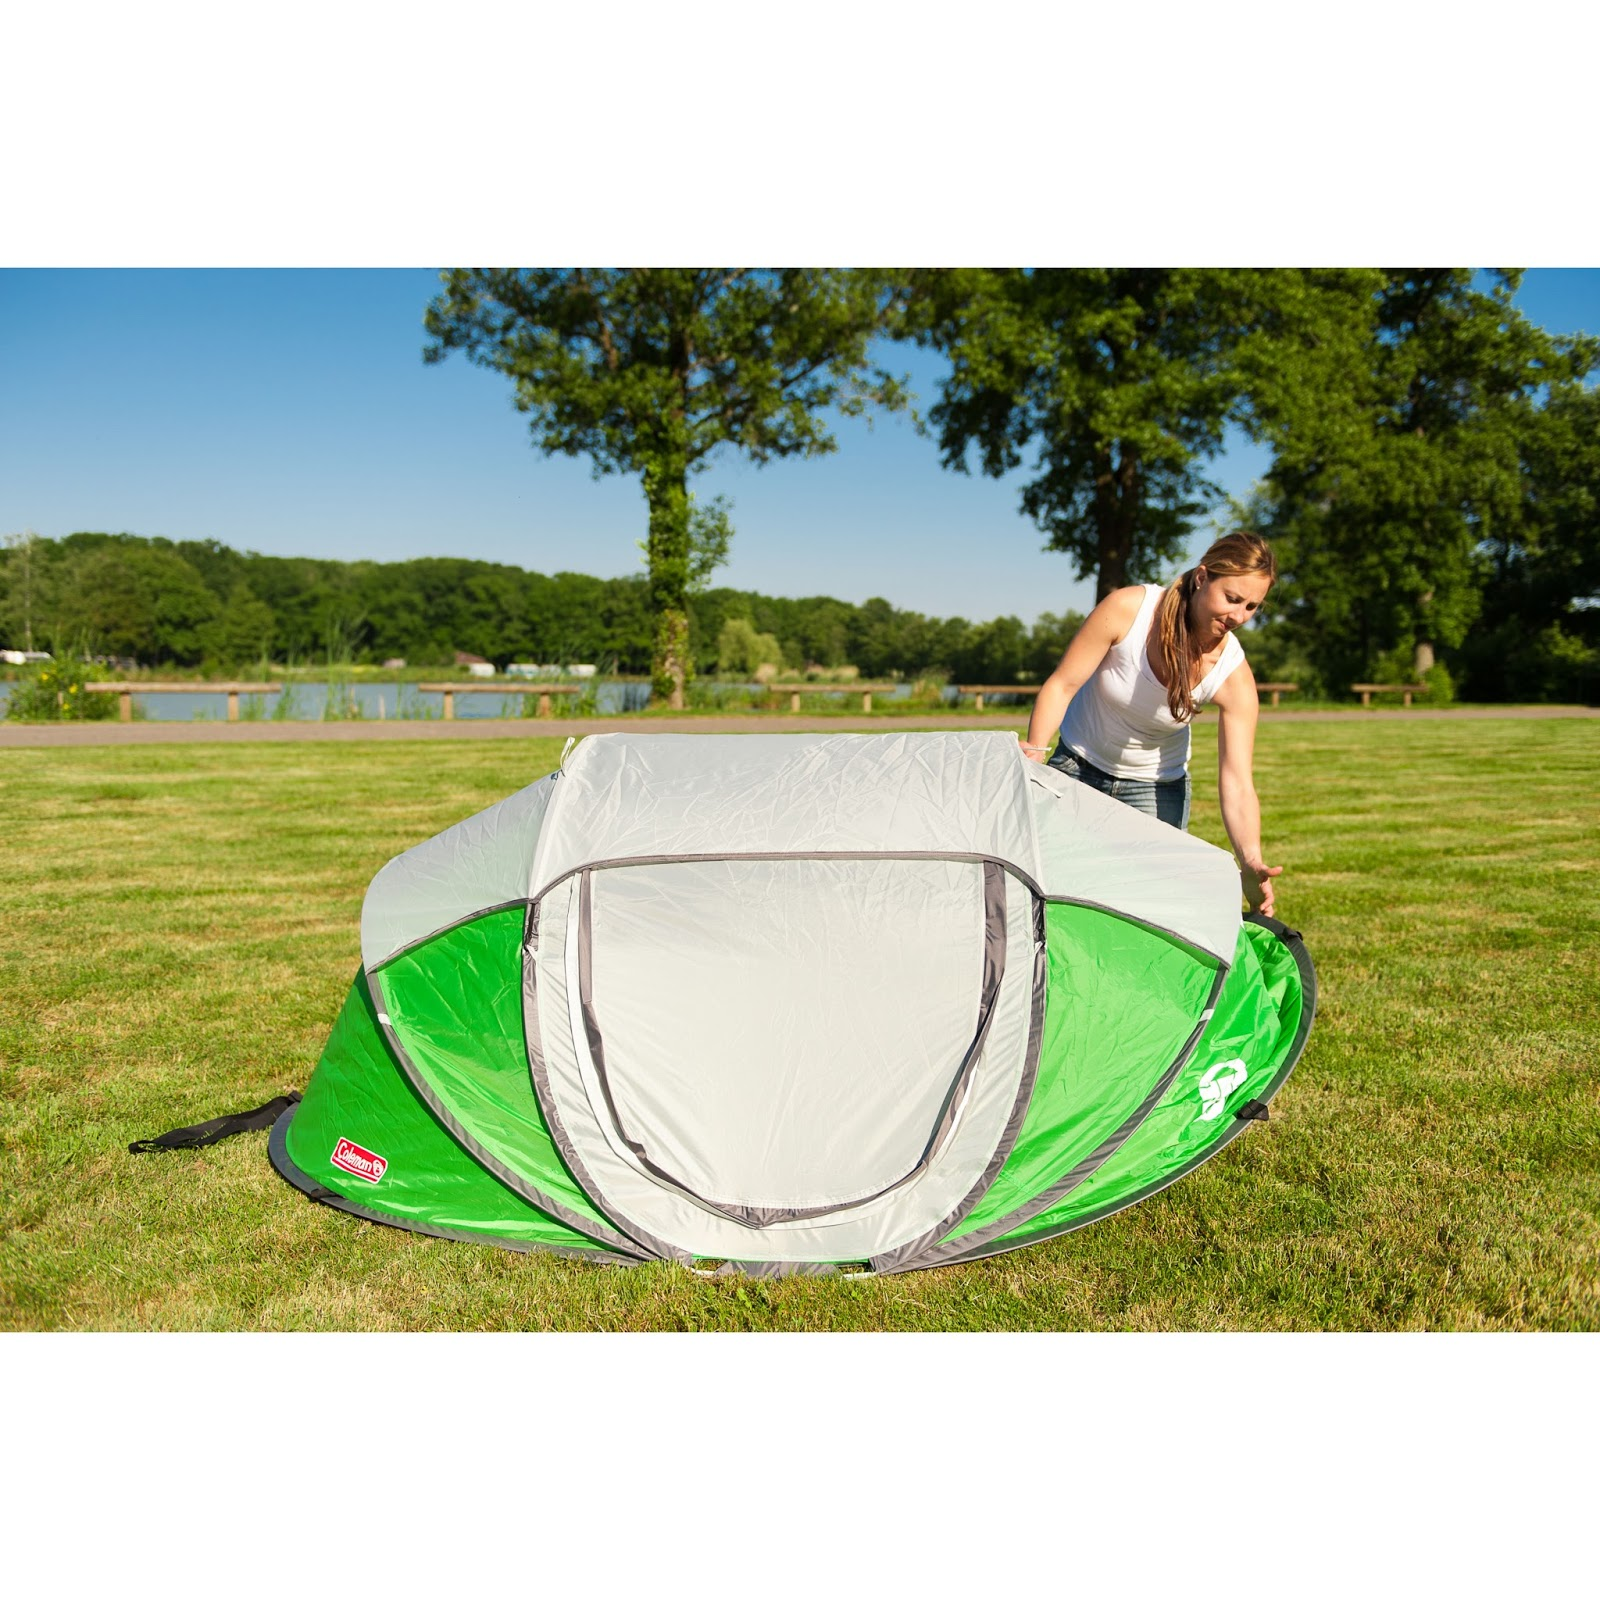 ... Pop Up Tent from #Coleman has just arrived here in Little Paxton  a Fastpitch POP Up Tent in a striking Green u0026 White Colour Combination.  sc 1 st  IBEX C&ing Blog : coleman 4 person instant up tent - memphite.com